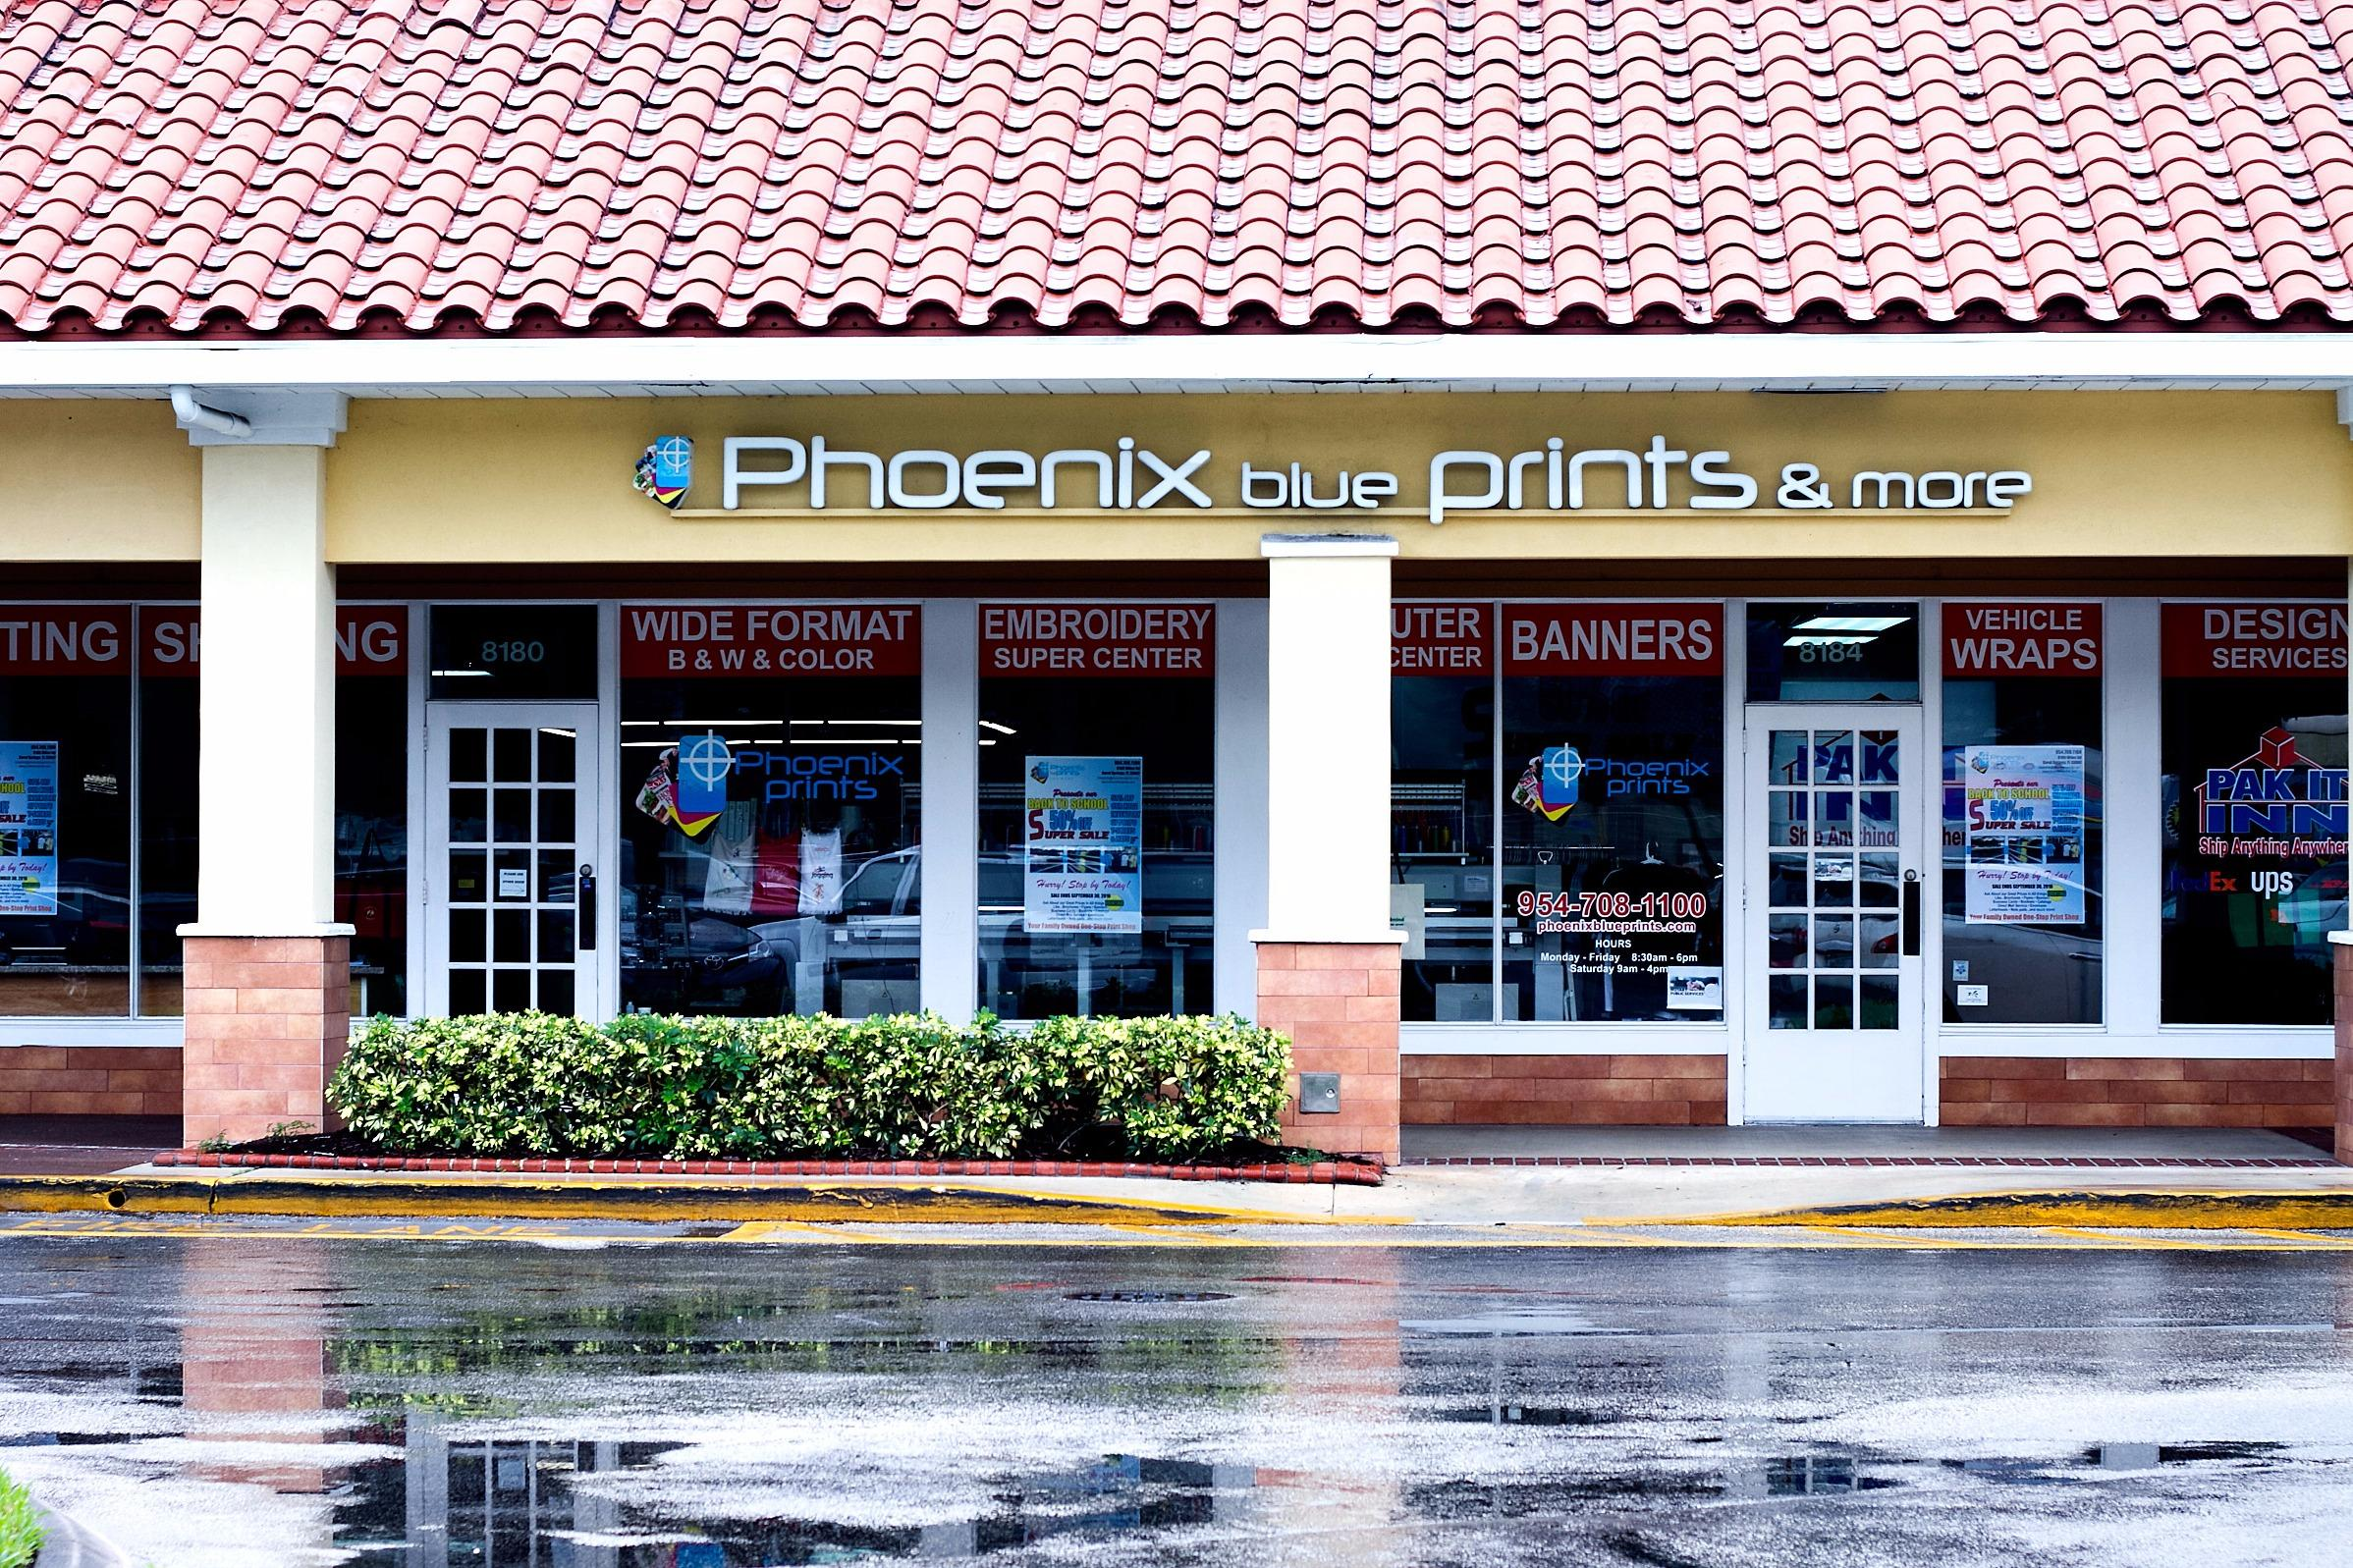 phoenix blueprints and more coupons near me in coral springs 8coupons. Black Bedroom Furniture Sets. Home Design Ideas